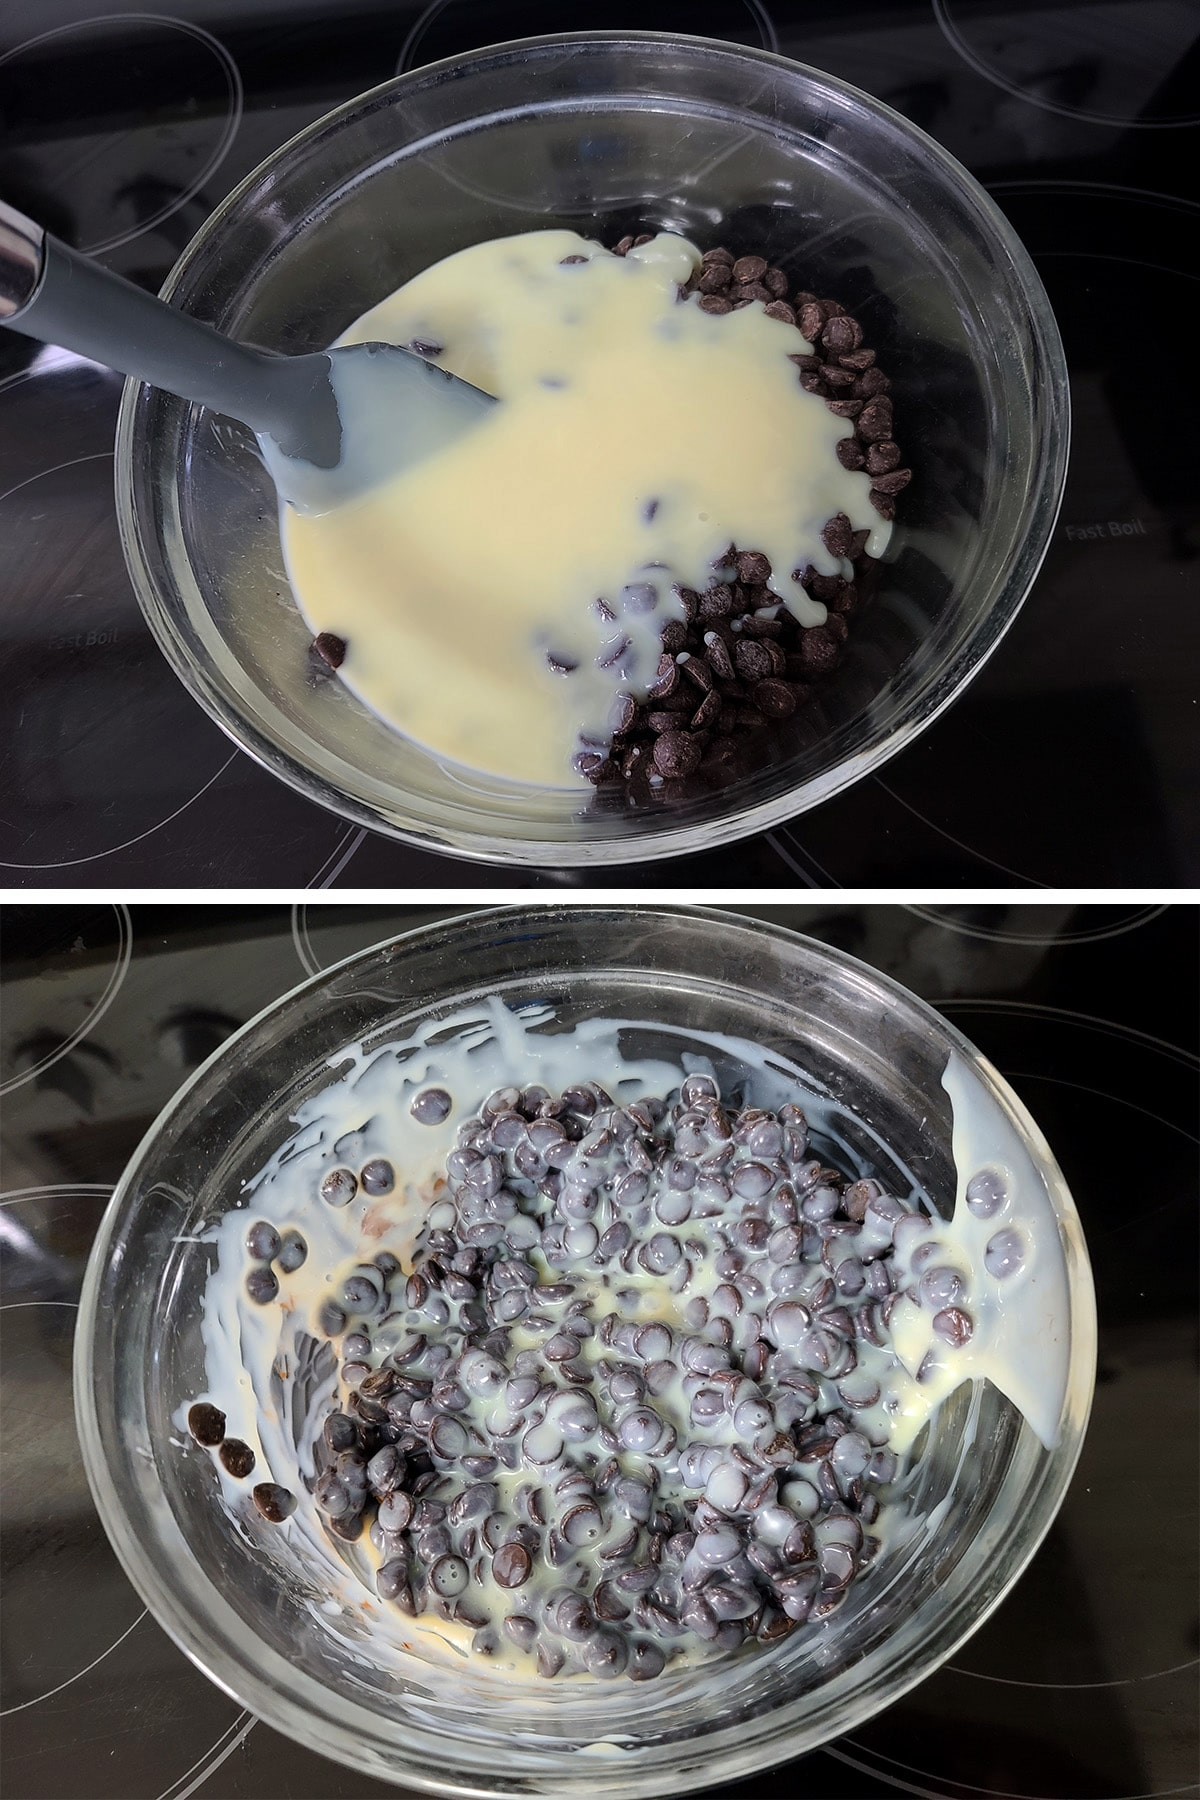 Sweetened condensed milk and chocolate chips being stirred together in a glass bowl.